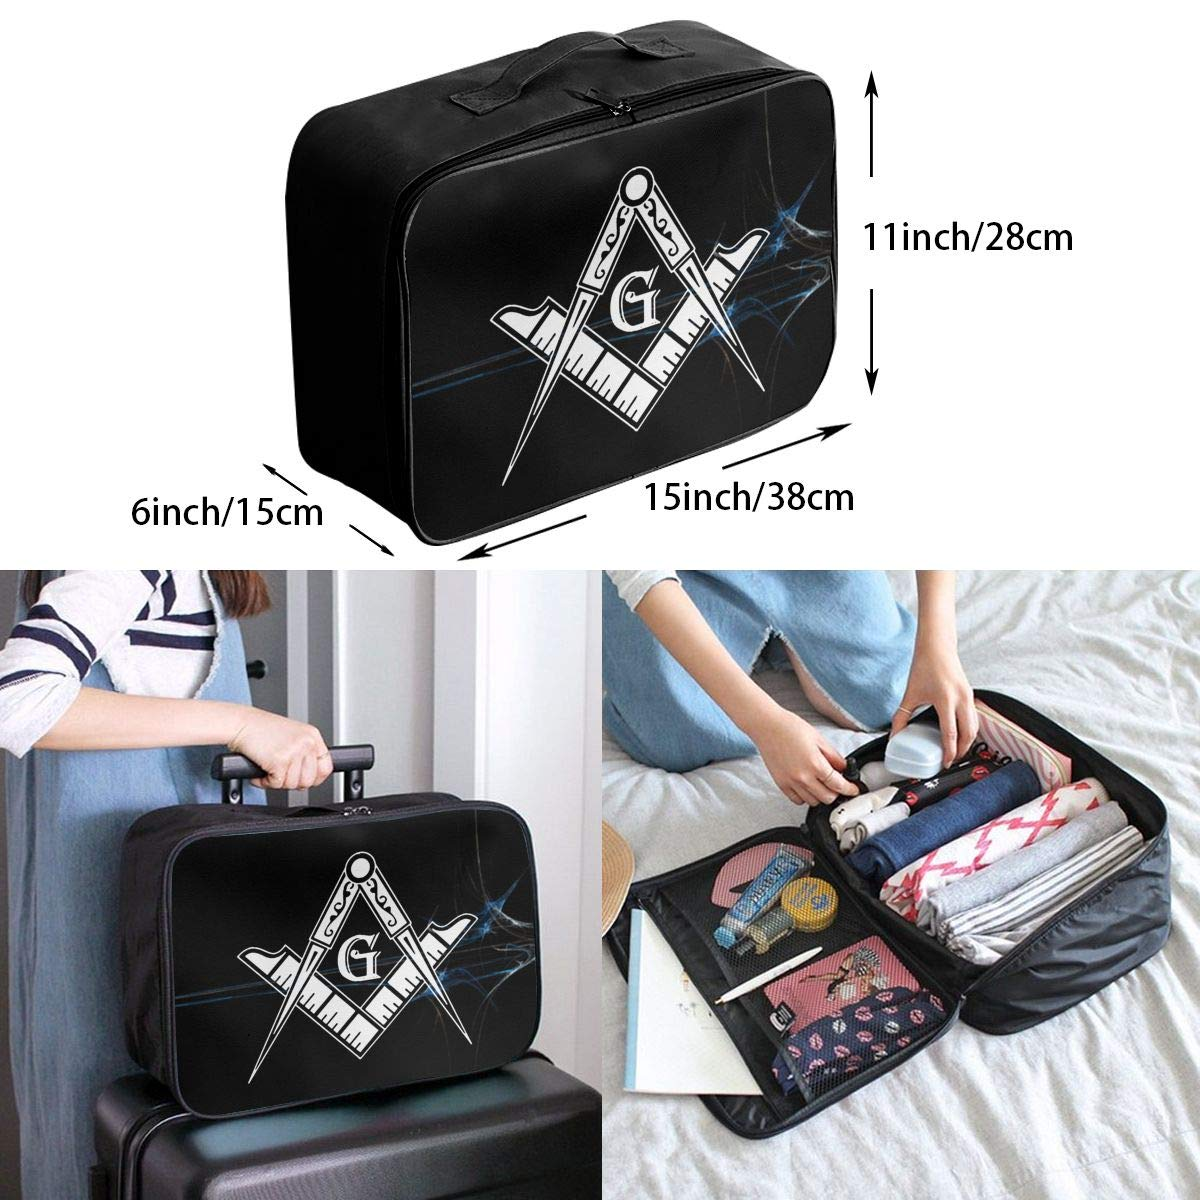 Unisex Travel Duffel Bag Waterproof Fashion Lightweight Large Capacity Portable Luggage Bag Freemason Logo